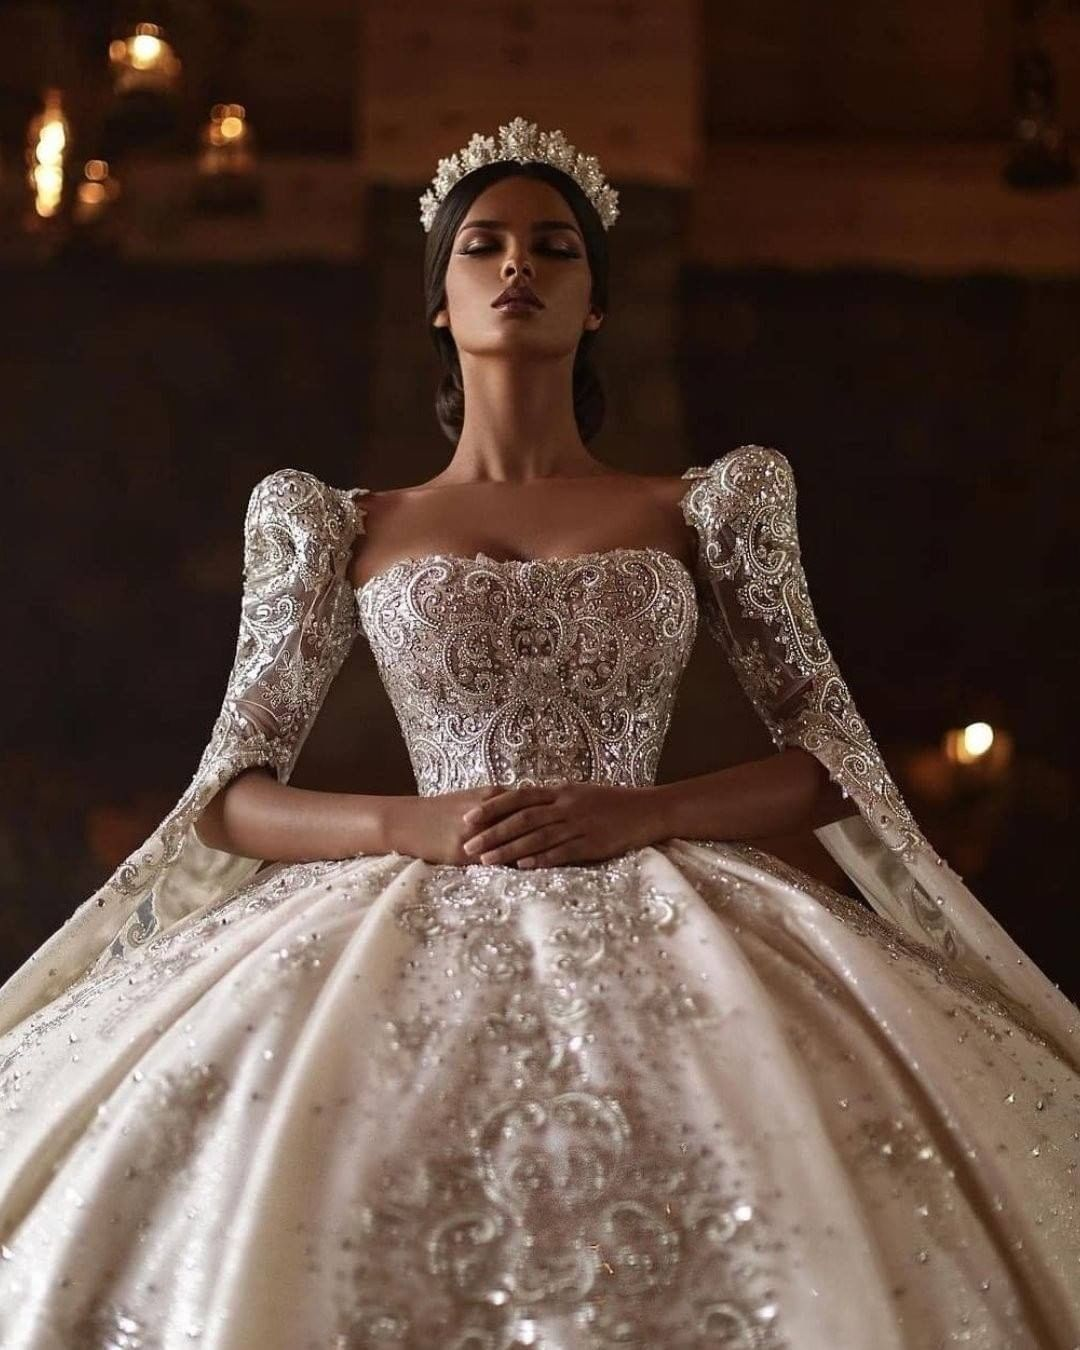 Luxury Wedding Pages On Instagram Can T Get Over These Amazing Dresses Which One Would Yo In 2021 Wedding Dresses Extravagant Wedding Dresses Bridal Ball Gown